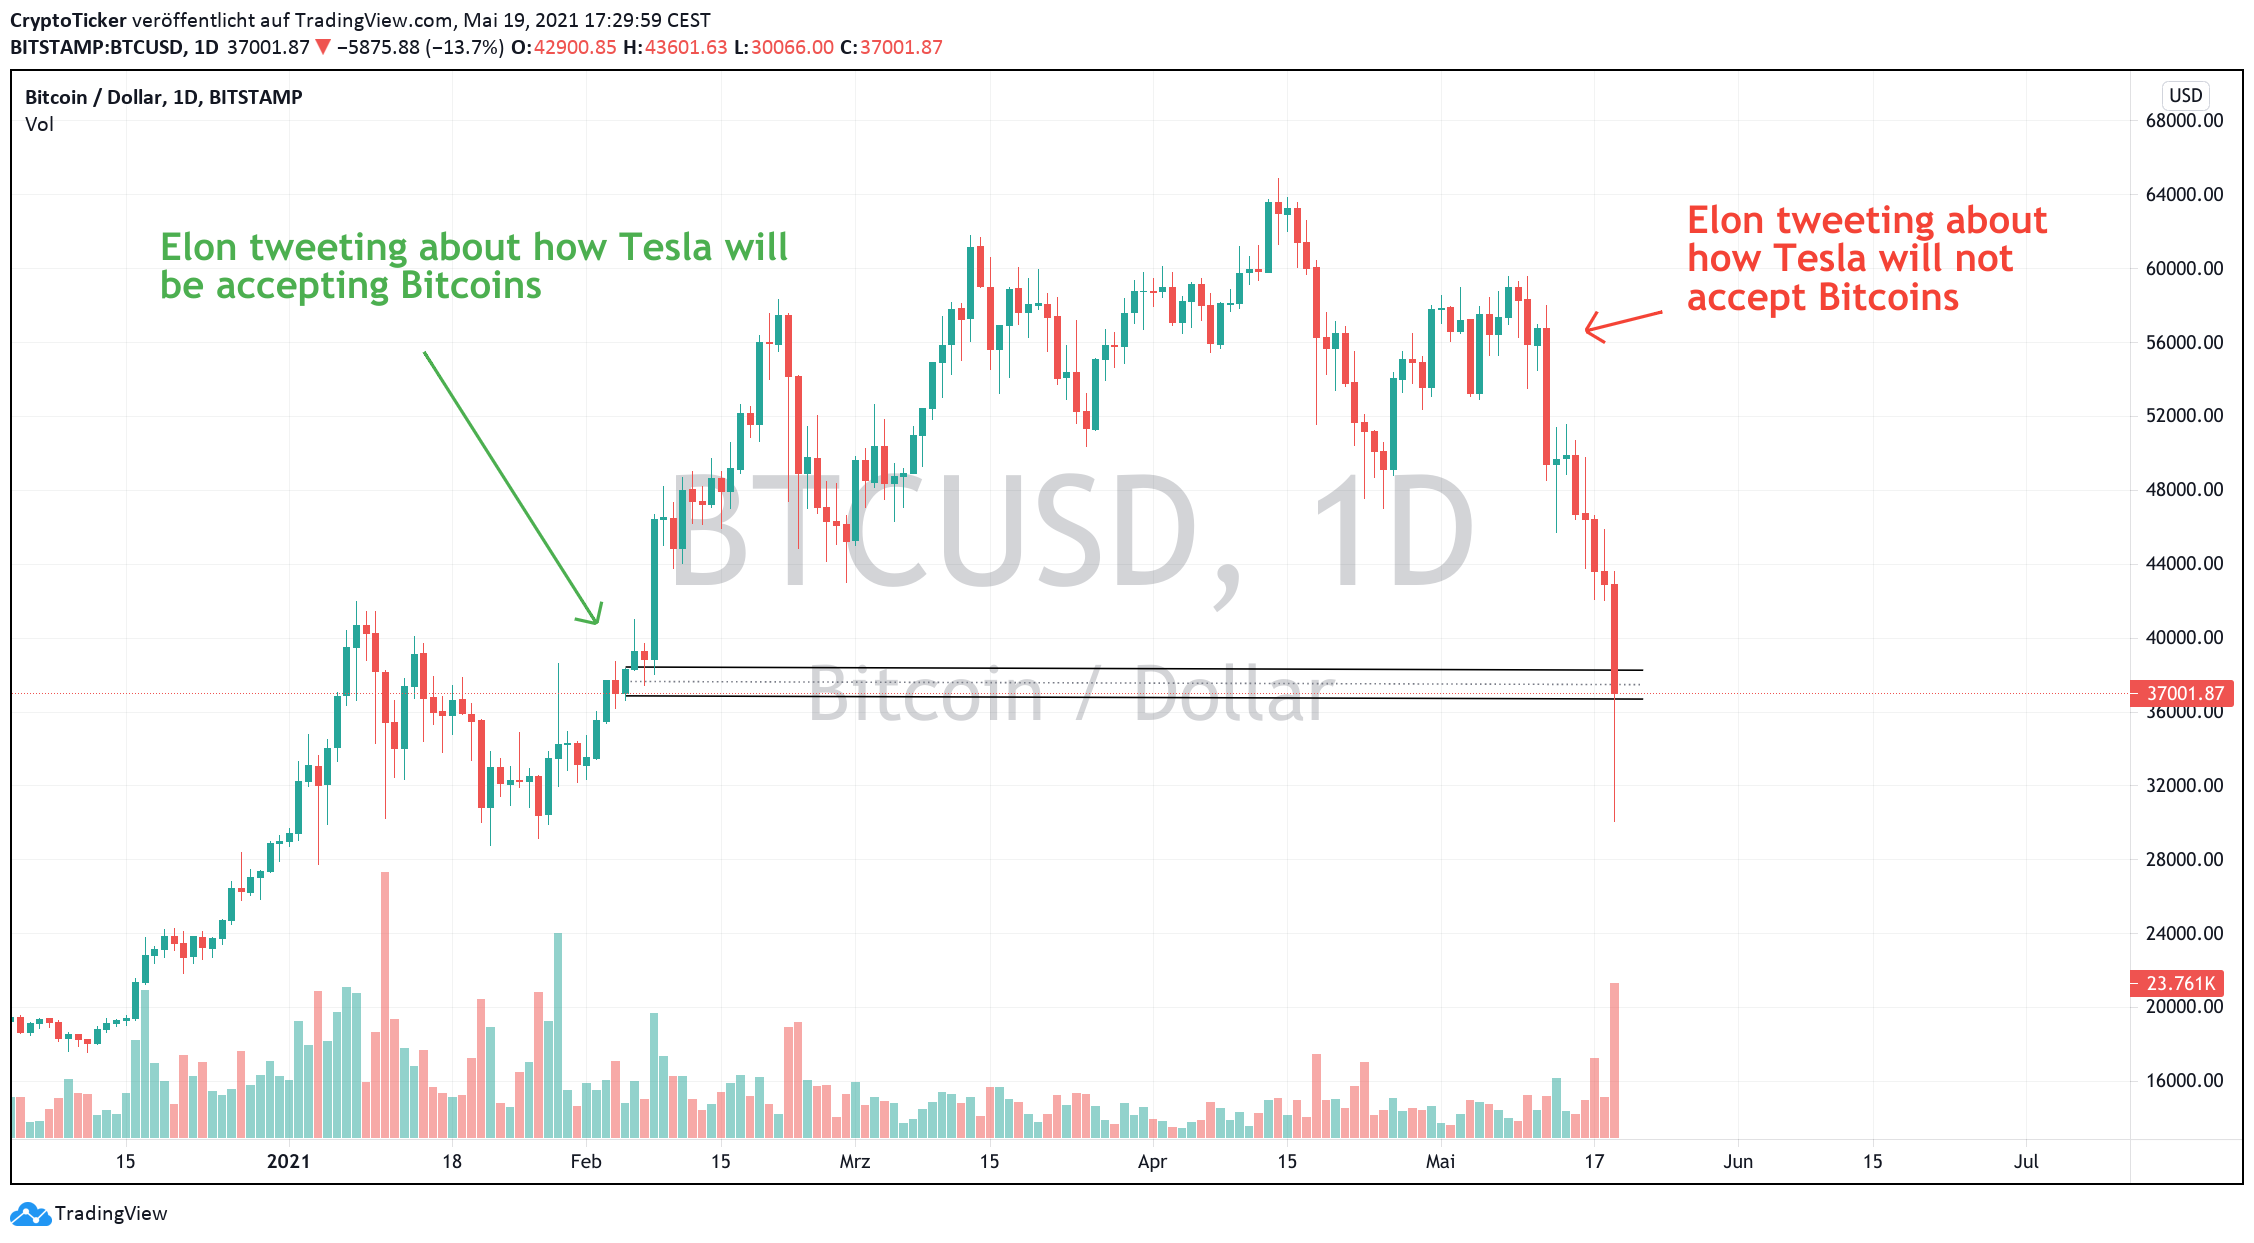 BTC/USD 1-day chart showing the effect of Elon's tweets on BTC